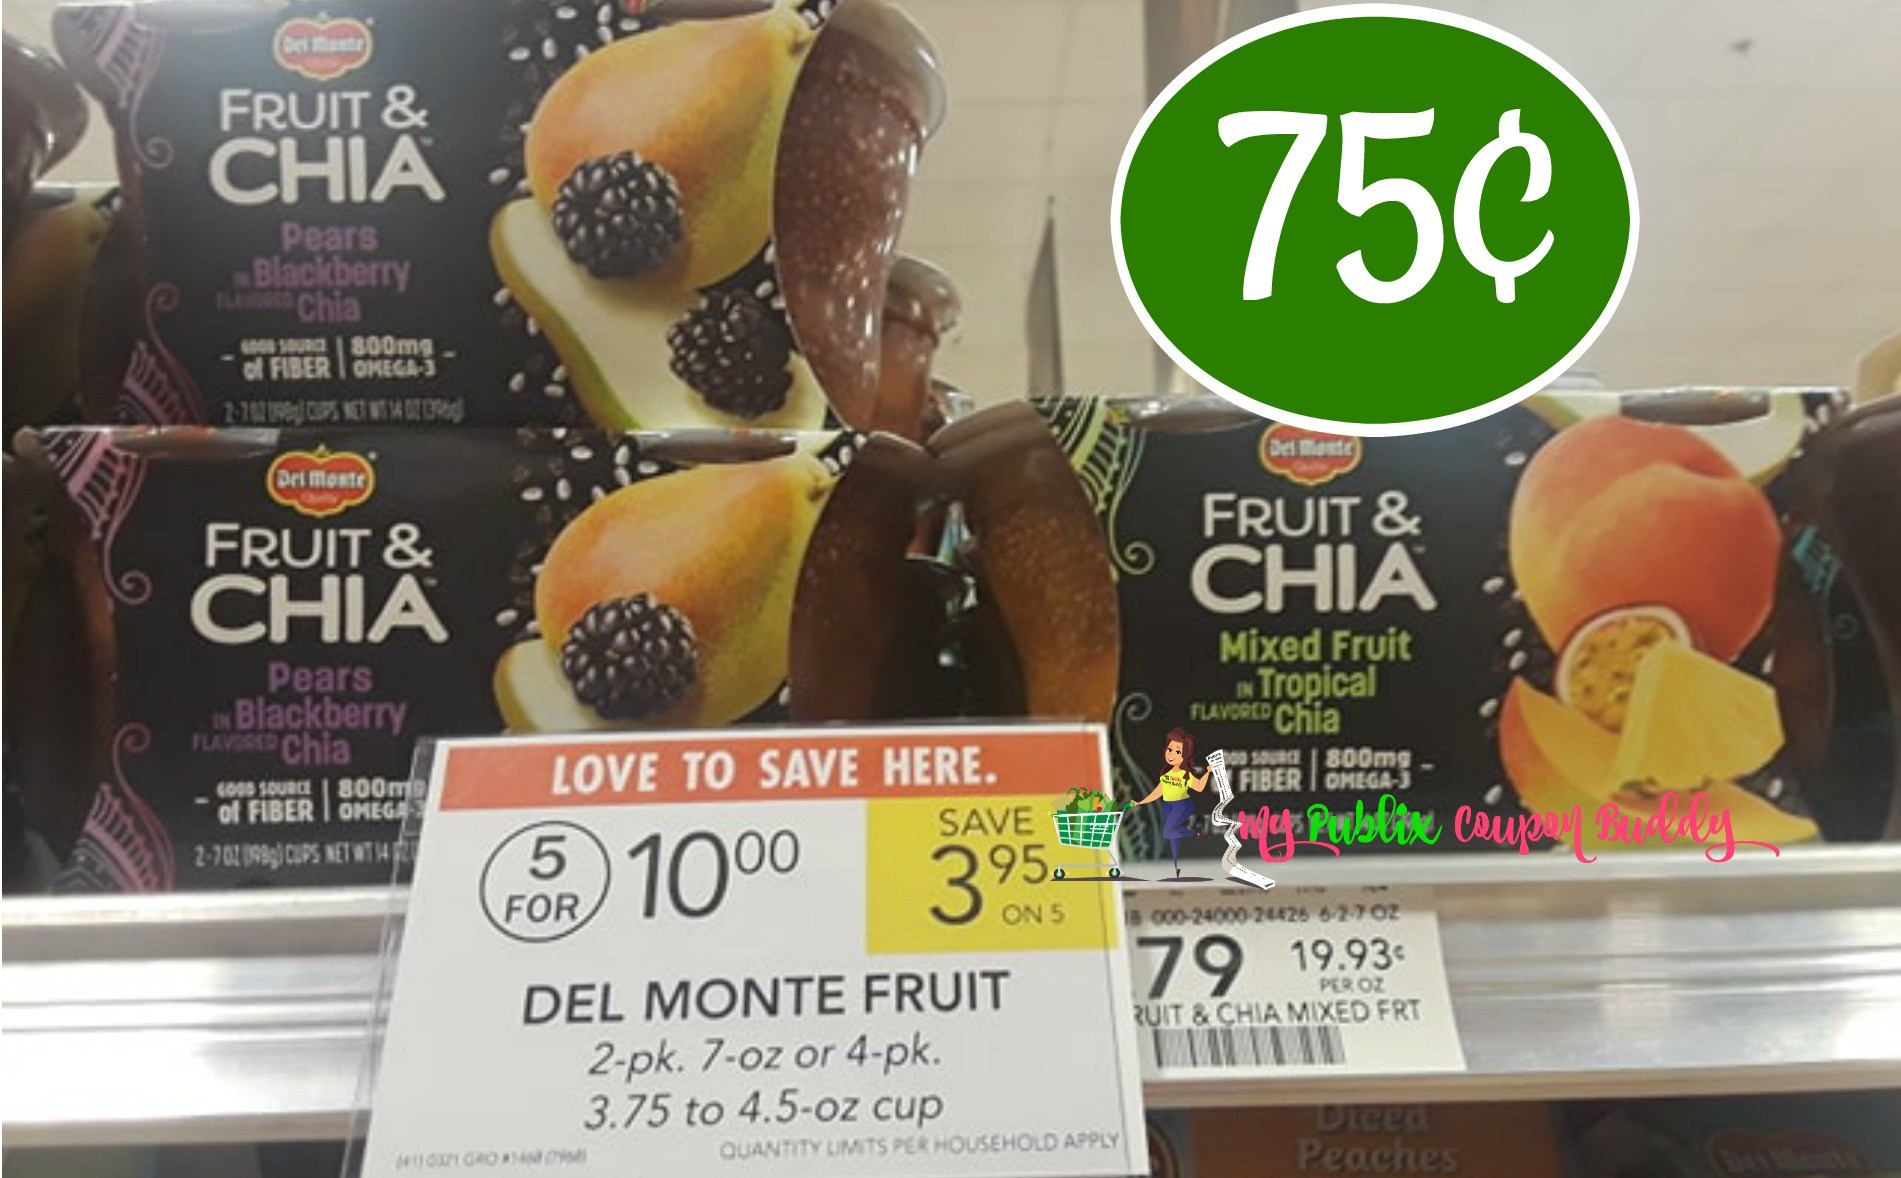 image about Del Monte Printable Coupons referred to as Del Monte Fruit Refreshers or Fruit Chia 75¢ at Publix